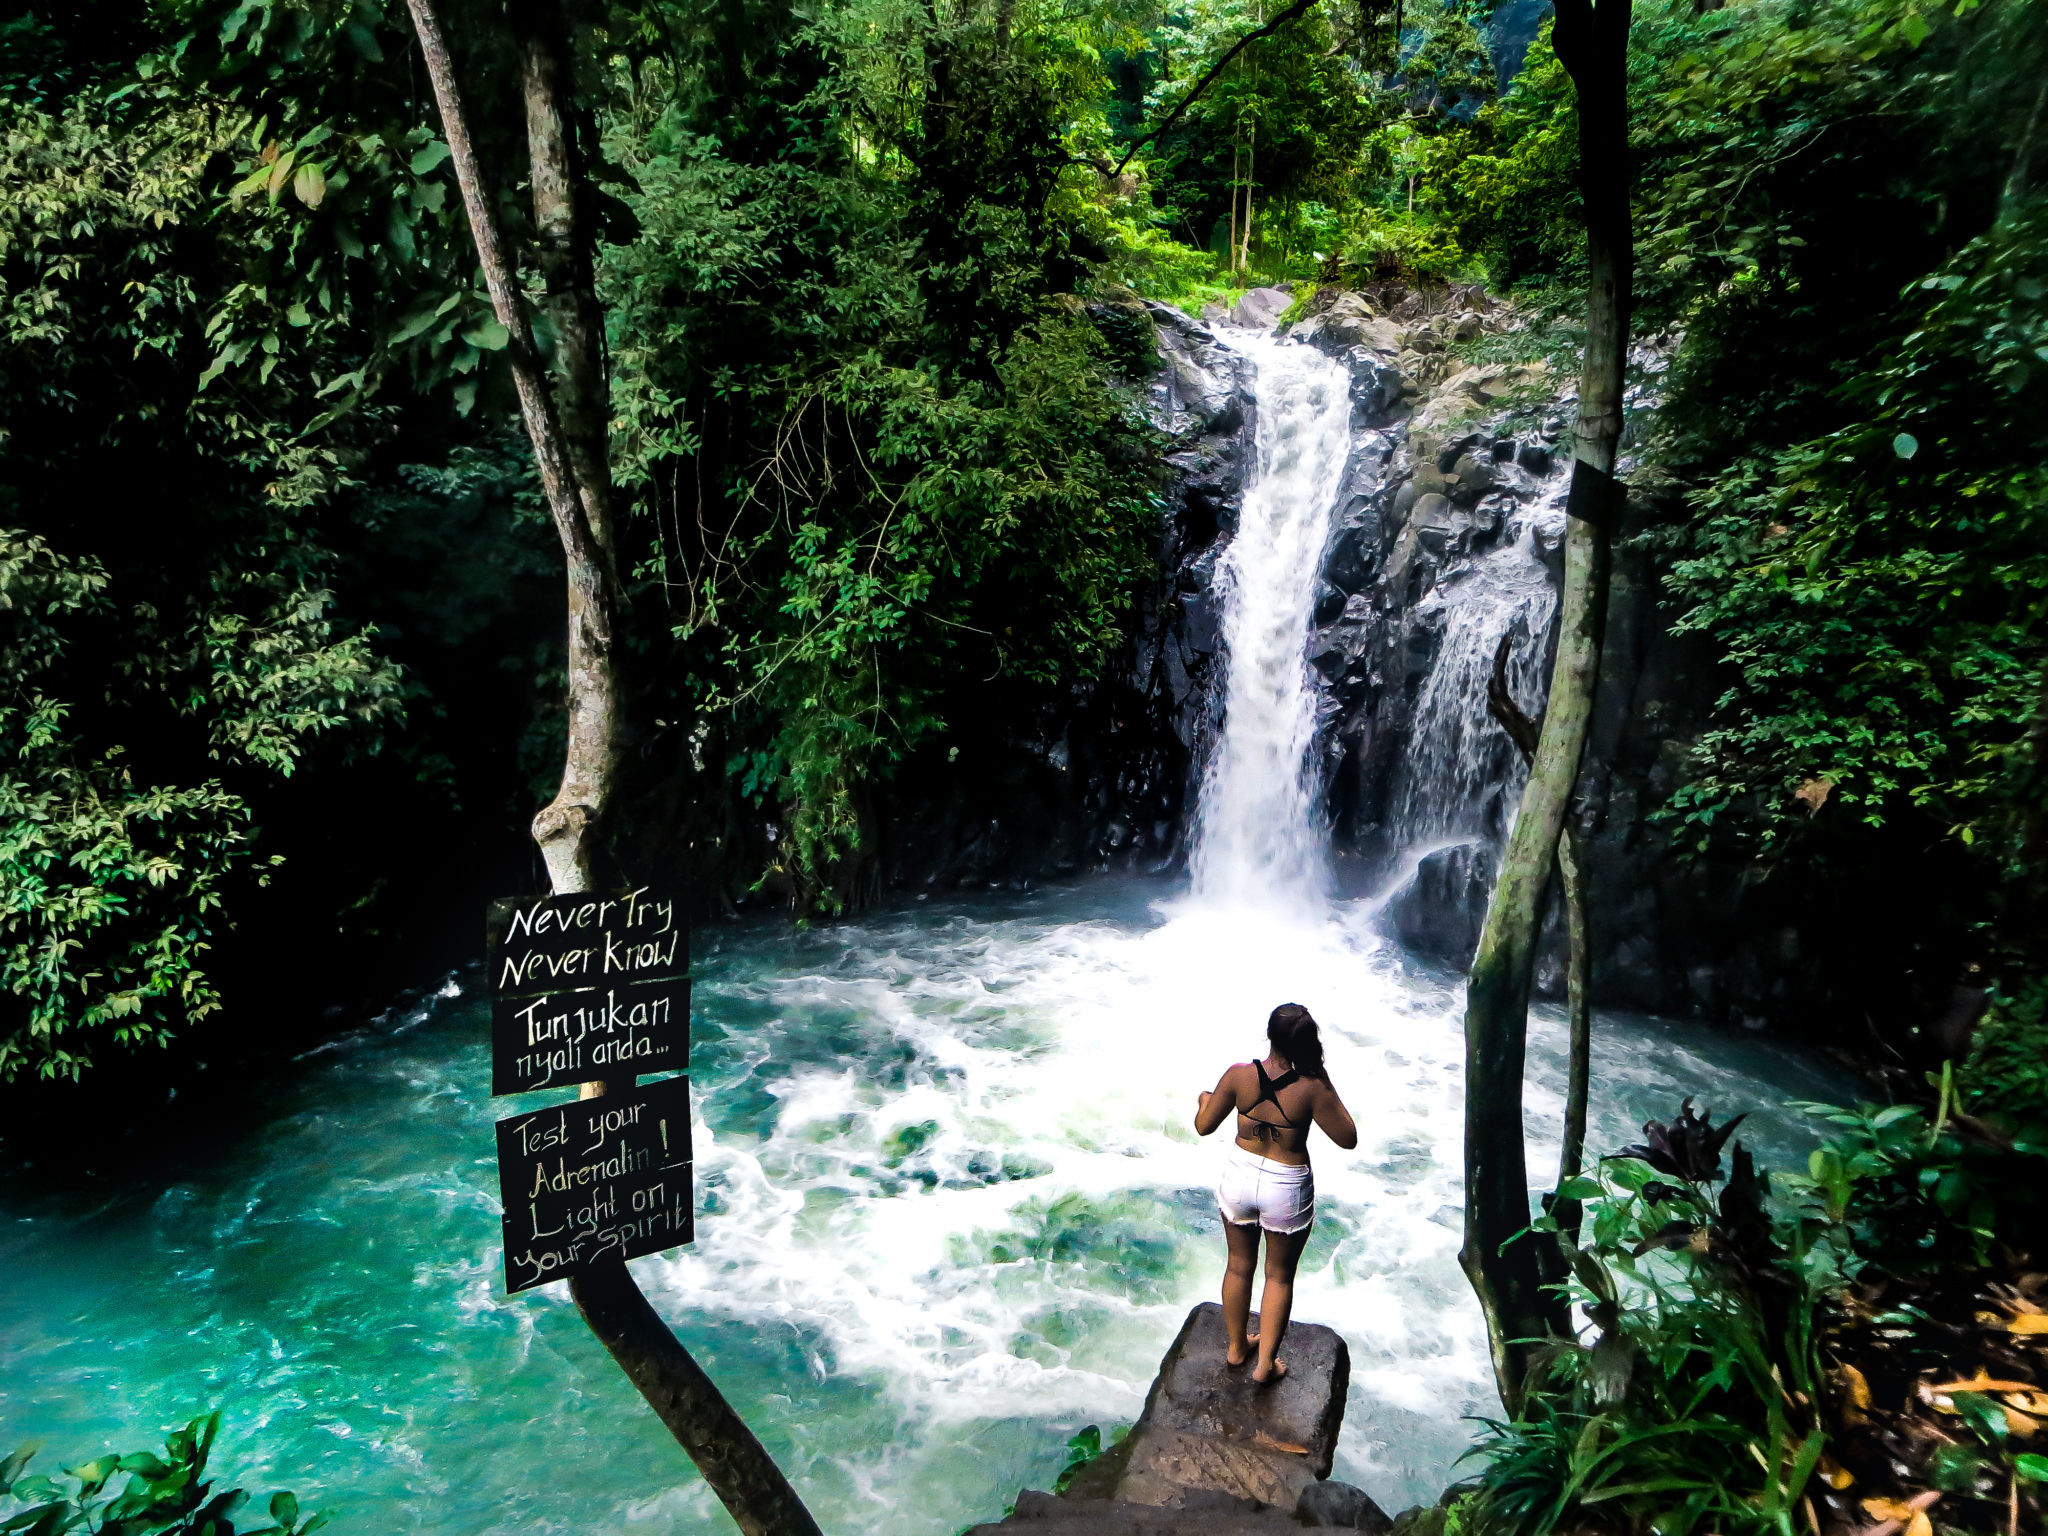 Aling-Aling: blue water on the Bali travel route